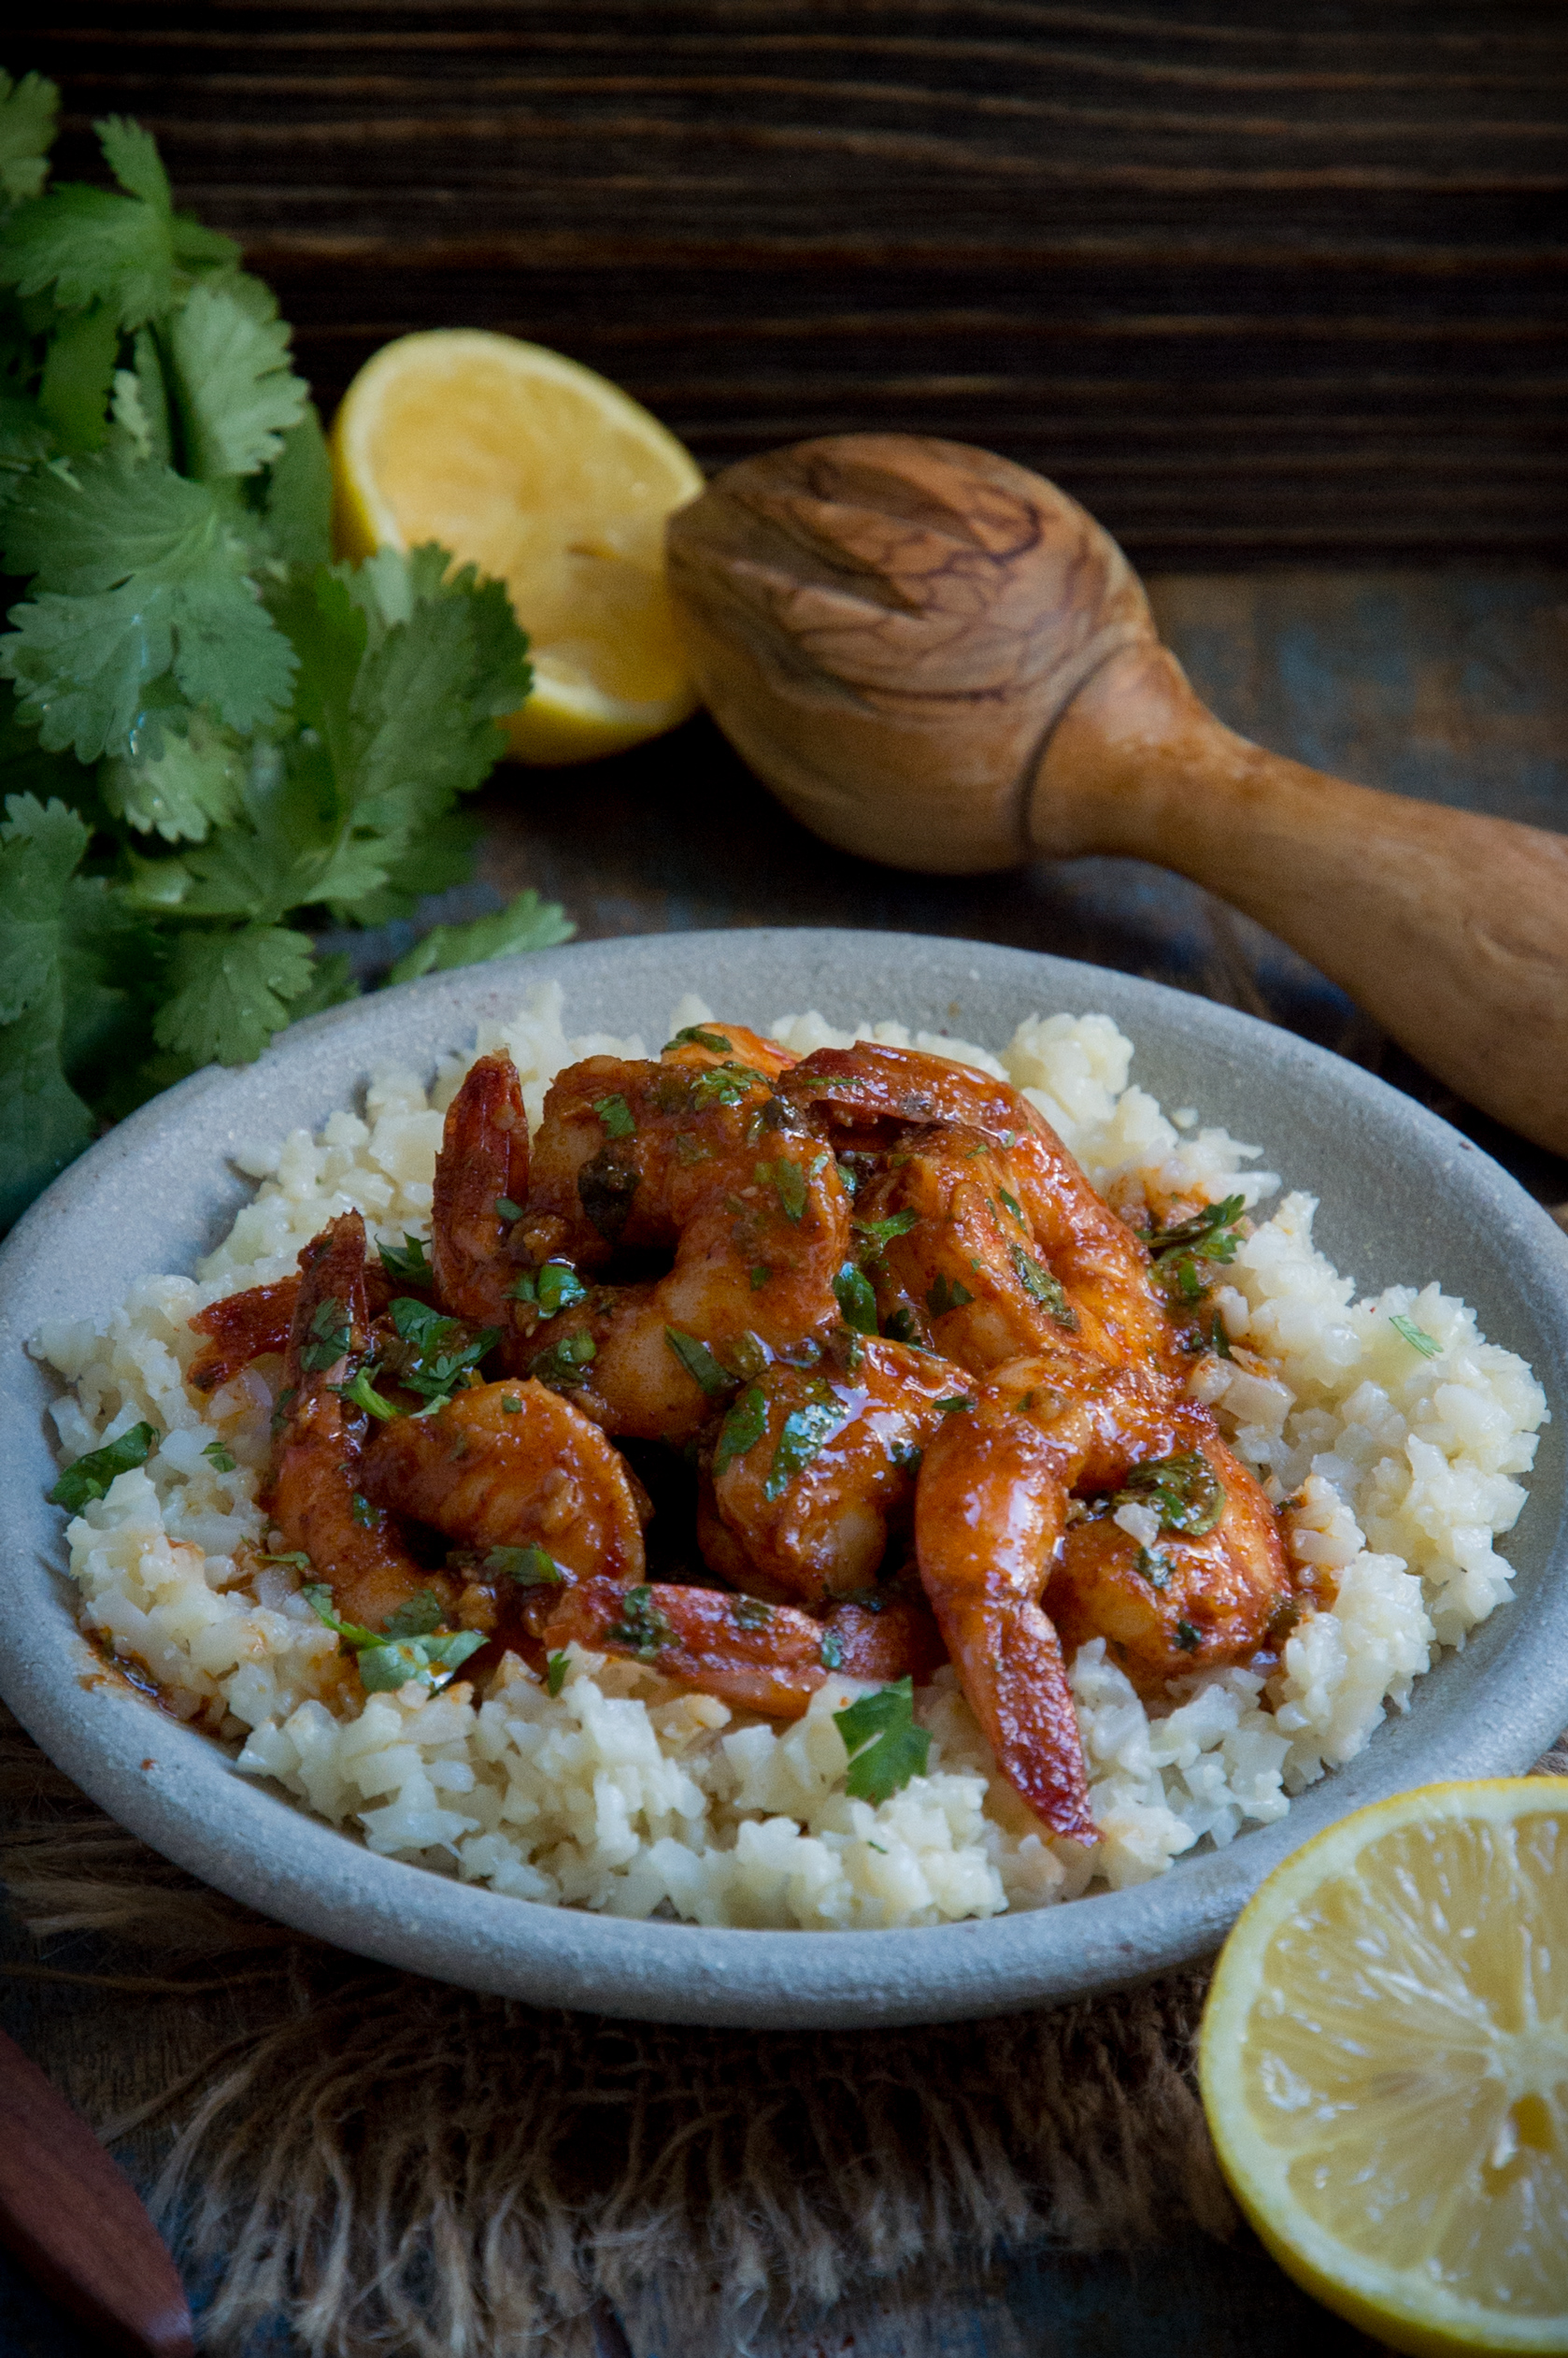 Low-Carb Spicy Baked Shrimp served over riced cauliflower